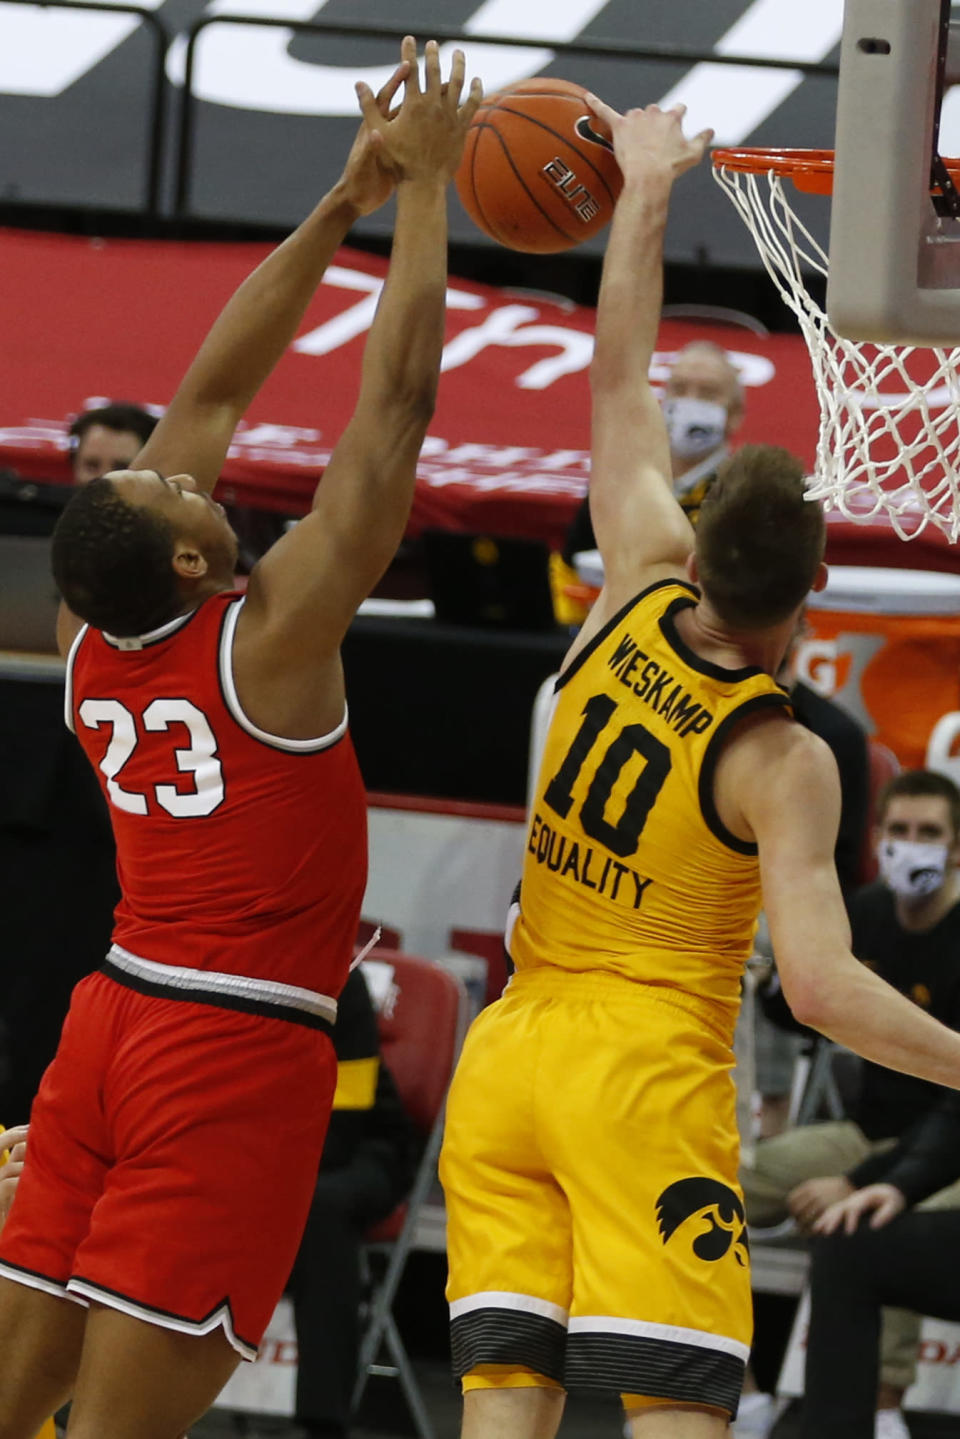 Iowa's Joe Wieskamp, right, blocks the shot of Ohio State's Zed Key during the first half of an NCAA college basketball game Sunday, Feb. 28, 2021, in Columbus, Ohio. (AP Photo/Jay LaPrete)